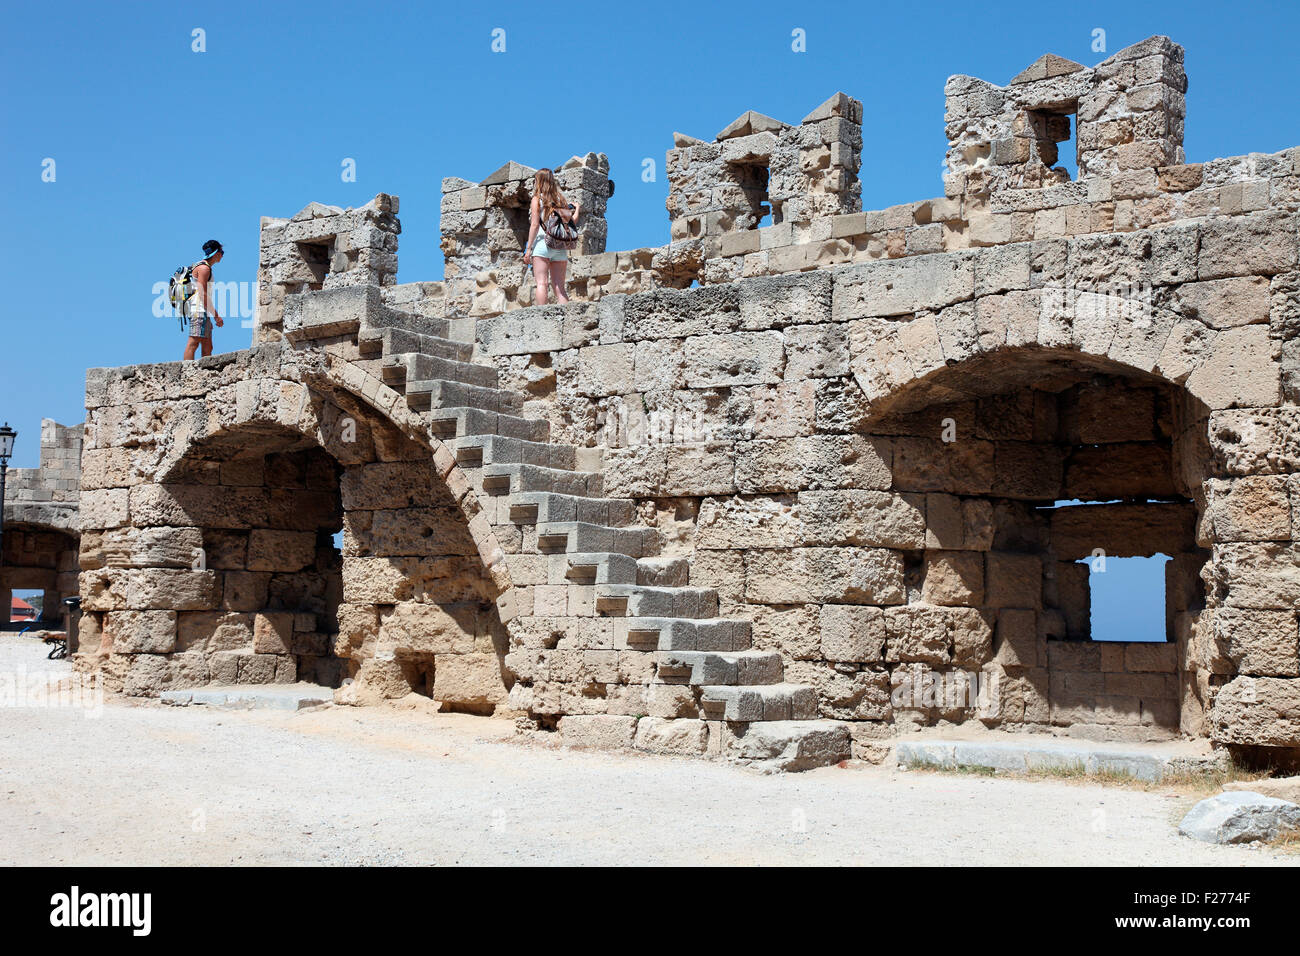 15th century walls of Rhodes Old Town - Stock Image